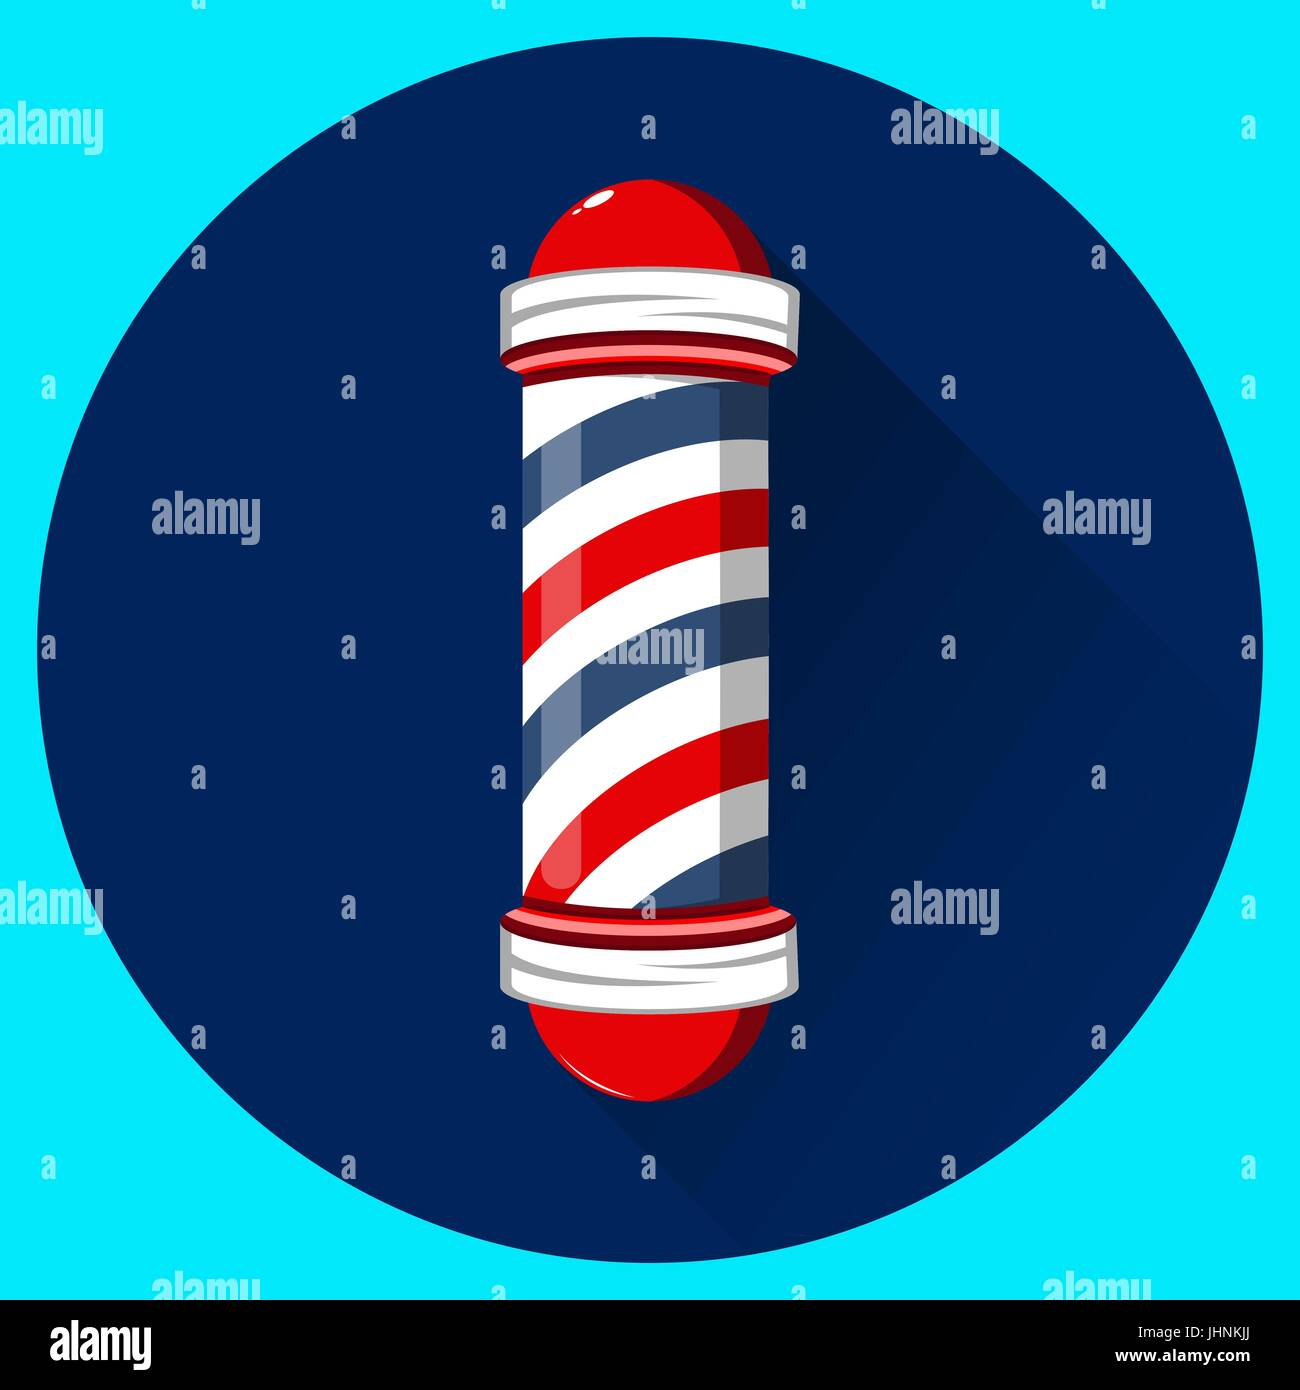 Old Fashioned Vintage Barber Shop Pole With Red Blue And White Stripes Vector Flat Illustration